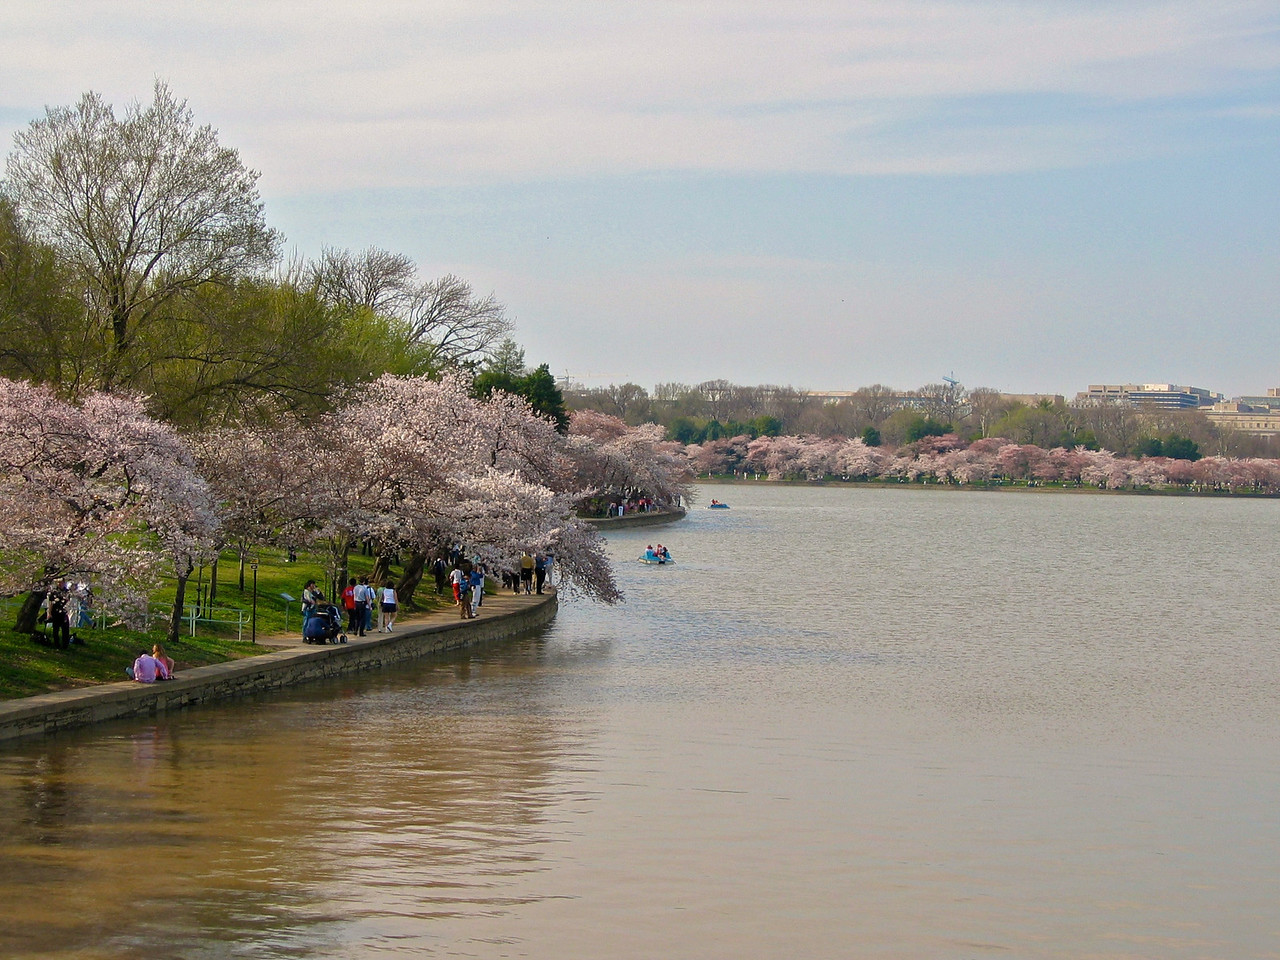 The Kwanzan grows primarily in East Potomac Park and comes into bloom two weeks after the Yoshino. It produces clusters of clear pink double blossoms. East Potomac Park also has Fugenzo, which produces rosy pink double blossoms, and Shirofugen, which produces white double blossoms that age to pink